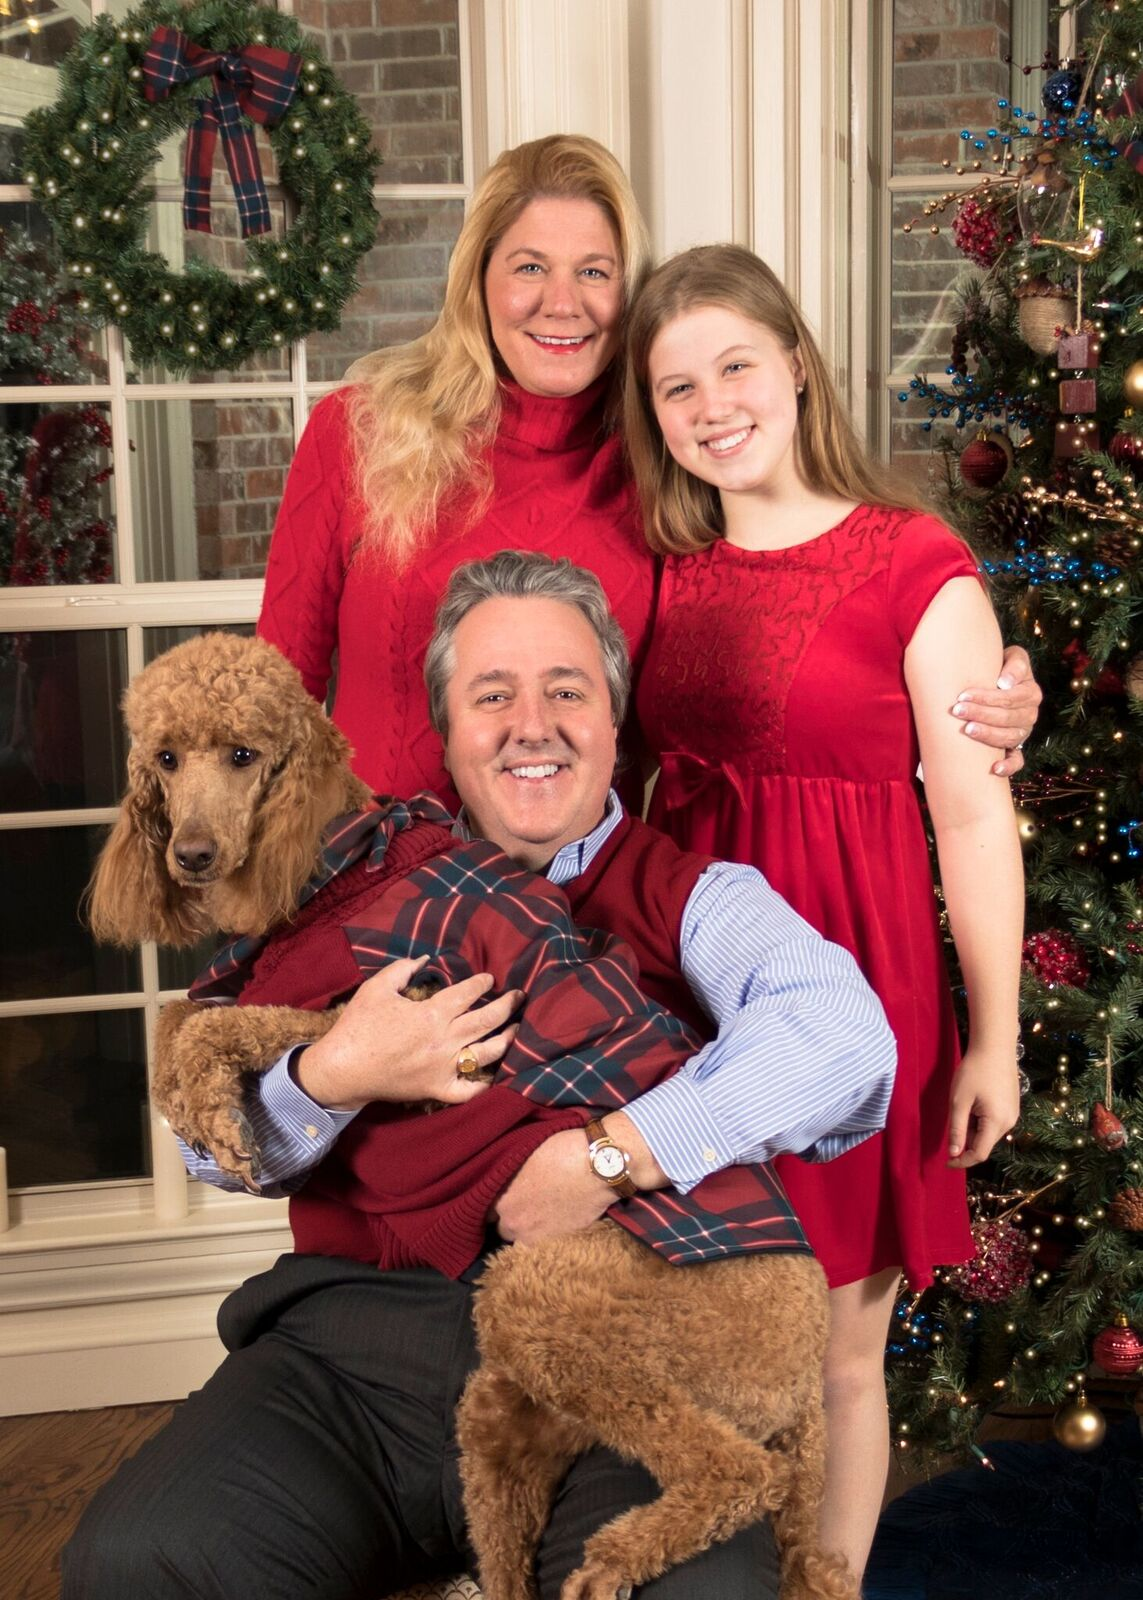 Photo of Lyon College president W. Joseph King and his family in a holiday card, in which King is holding the family dog.